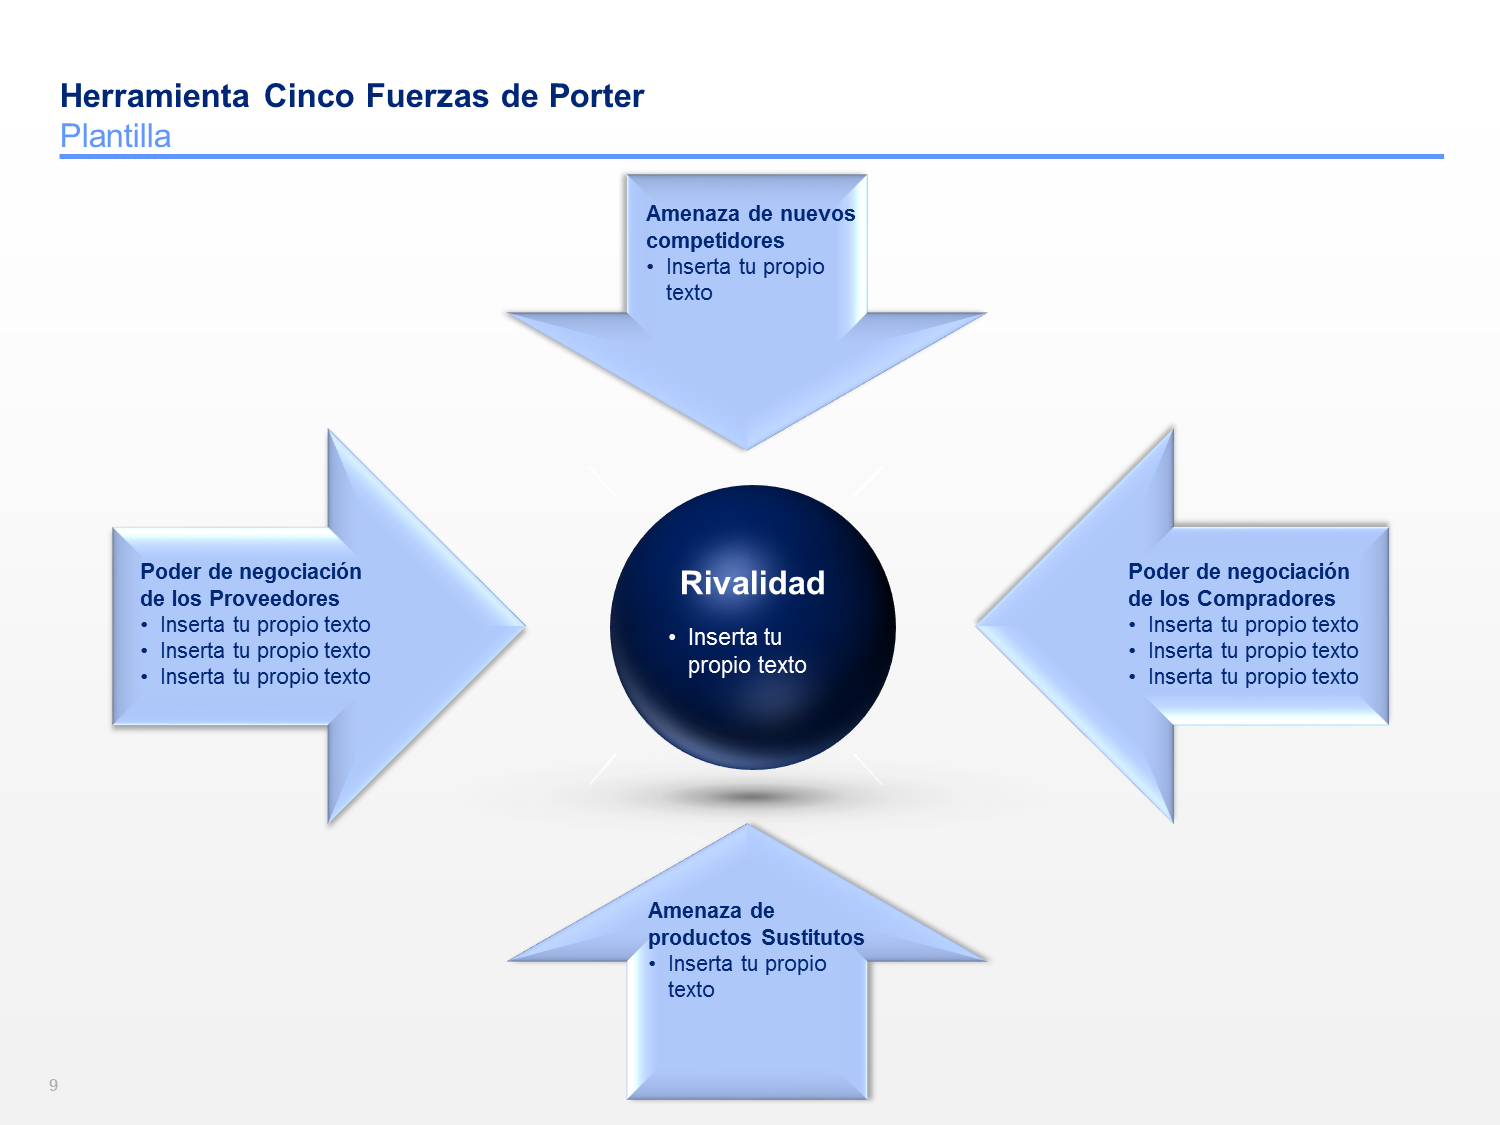 home depot porters five forces analysis Wikiwealth's five forces analysis evaluates the five factors that determine industry competition add your input to the-home-depot's five forces template is wikiwealth missing any analysis check out our entire database of free five forces reports or use our five forces generator to create your own.